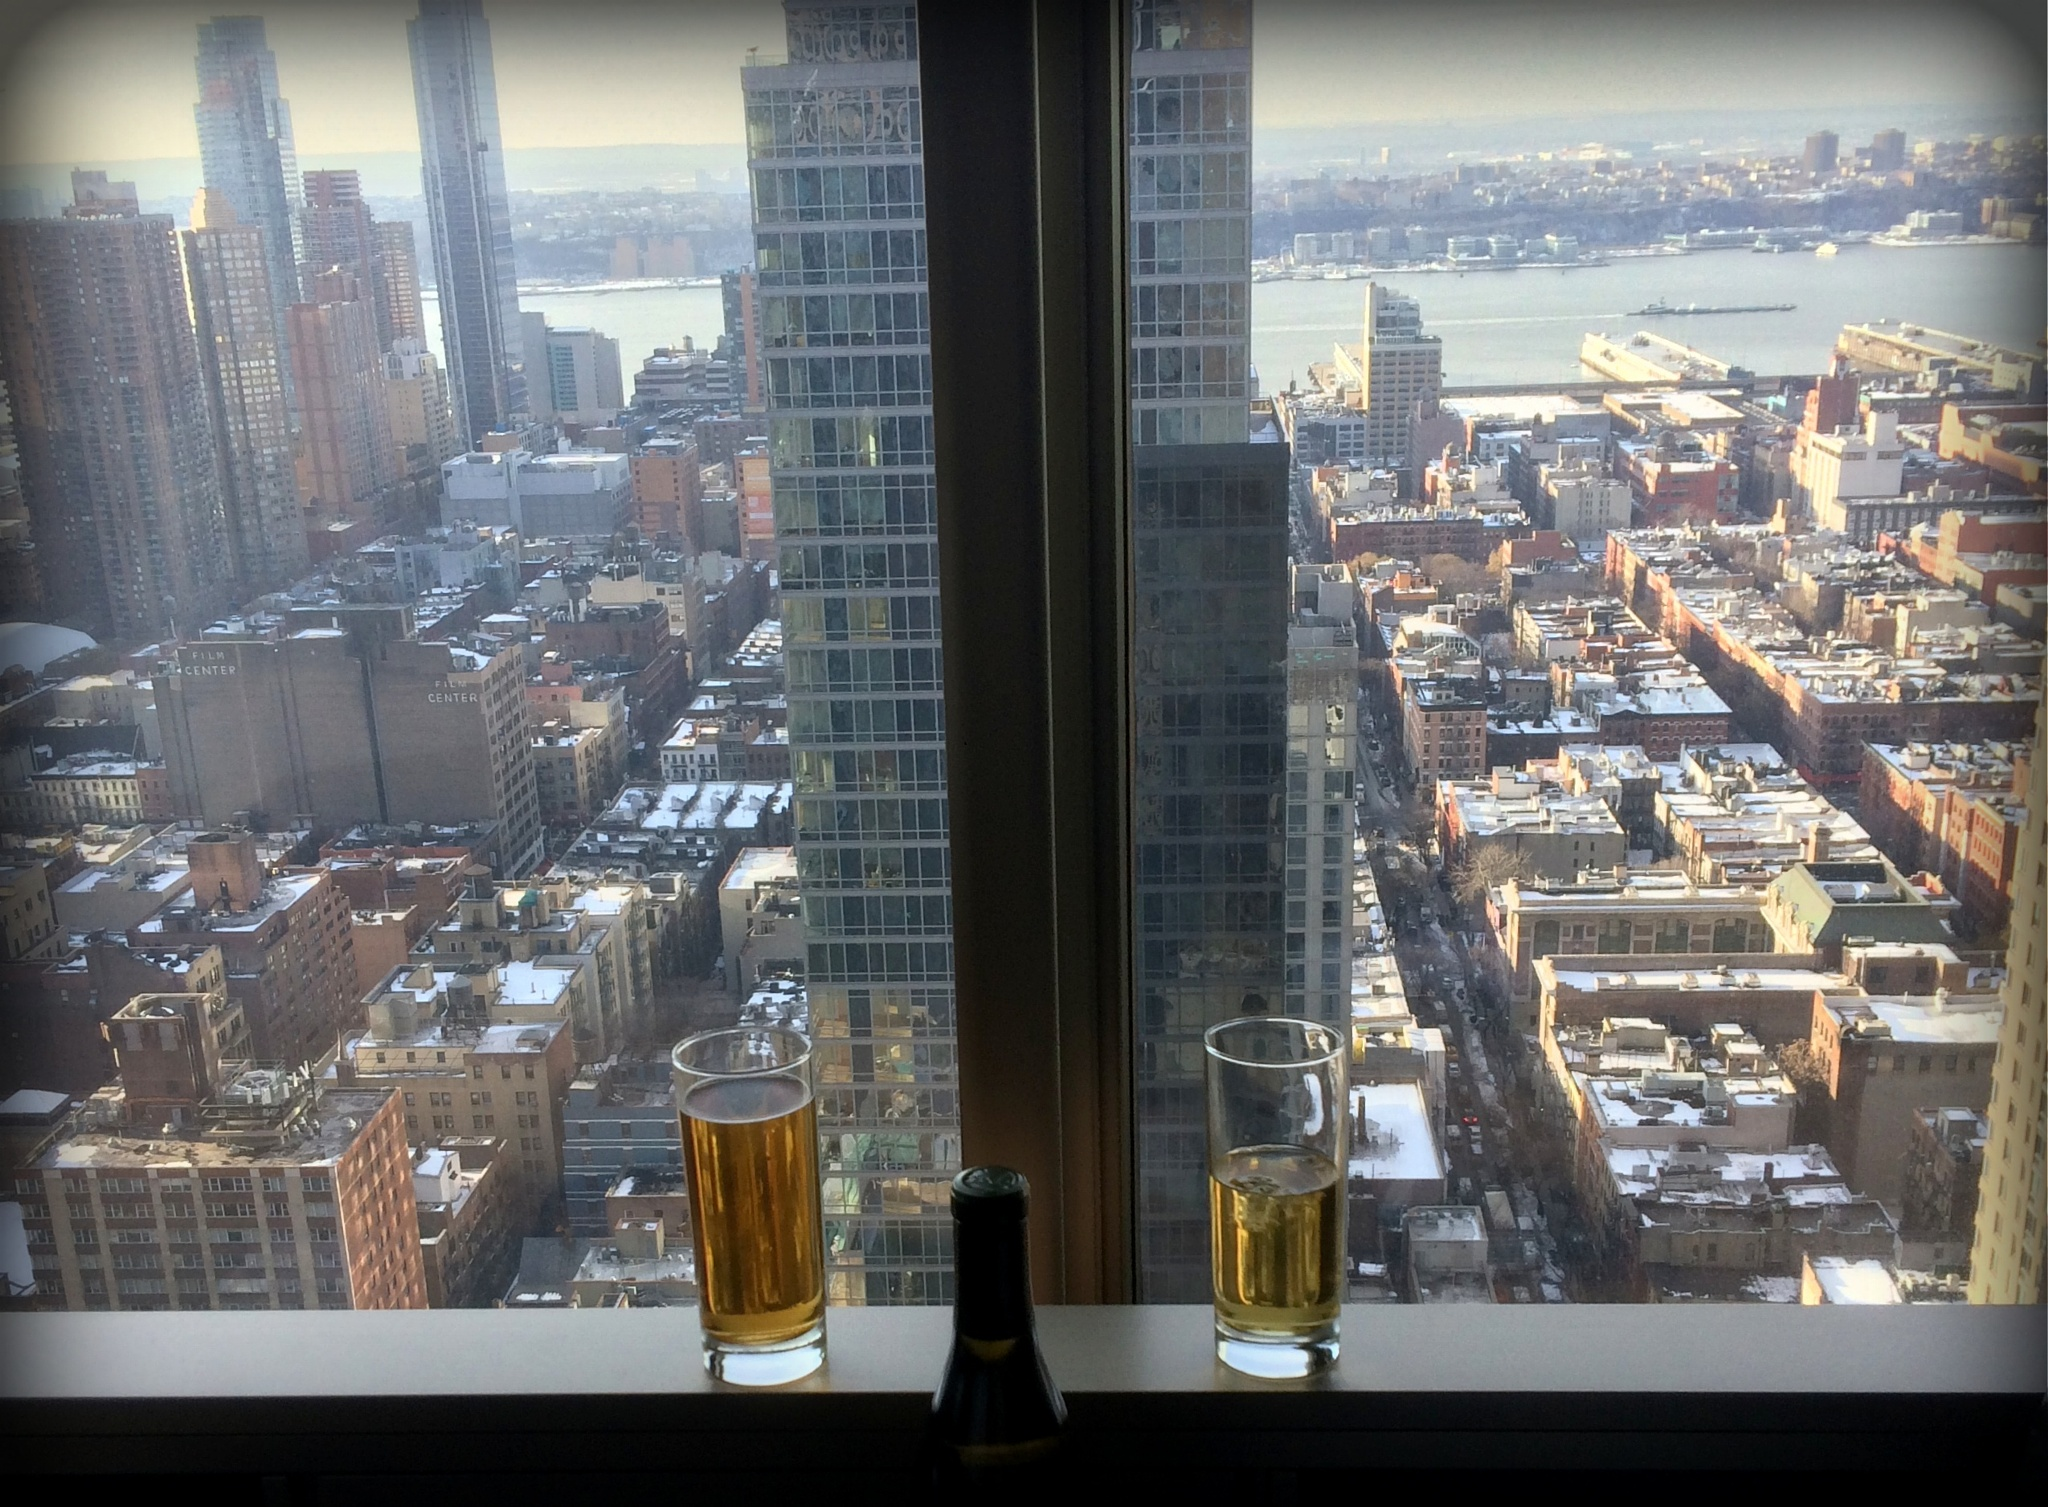 Cheers from Broadway! by RKGrant